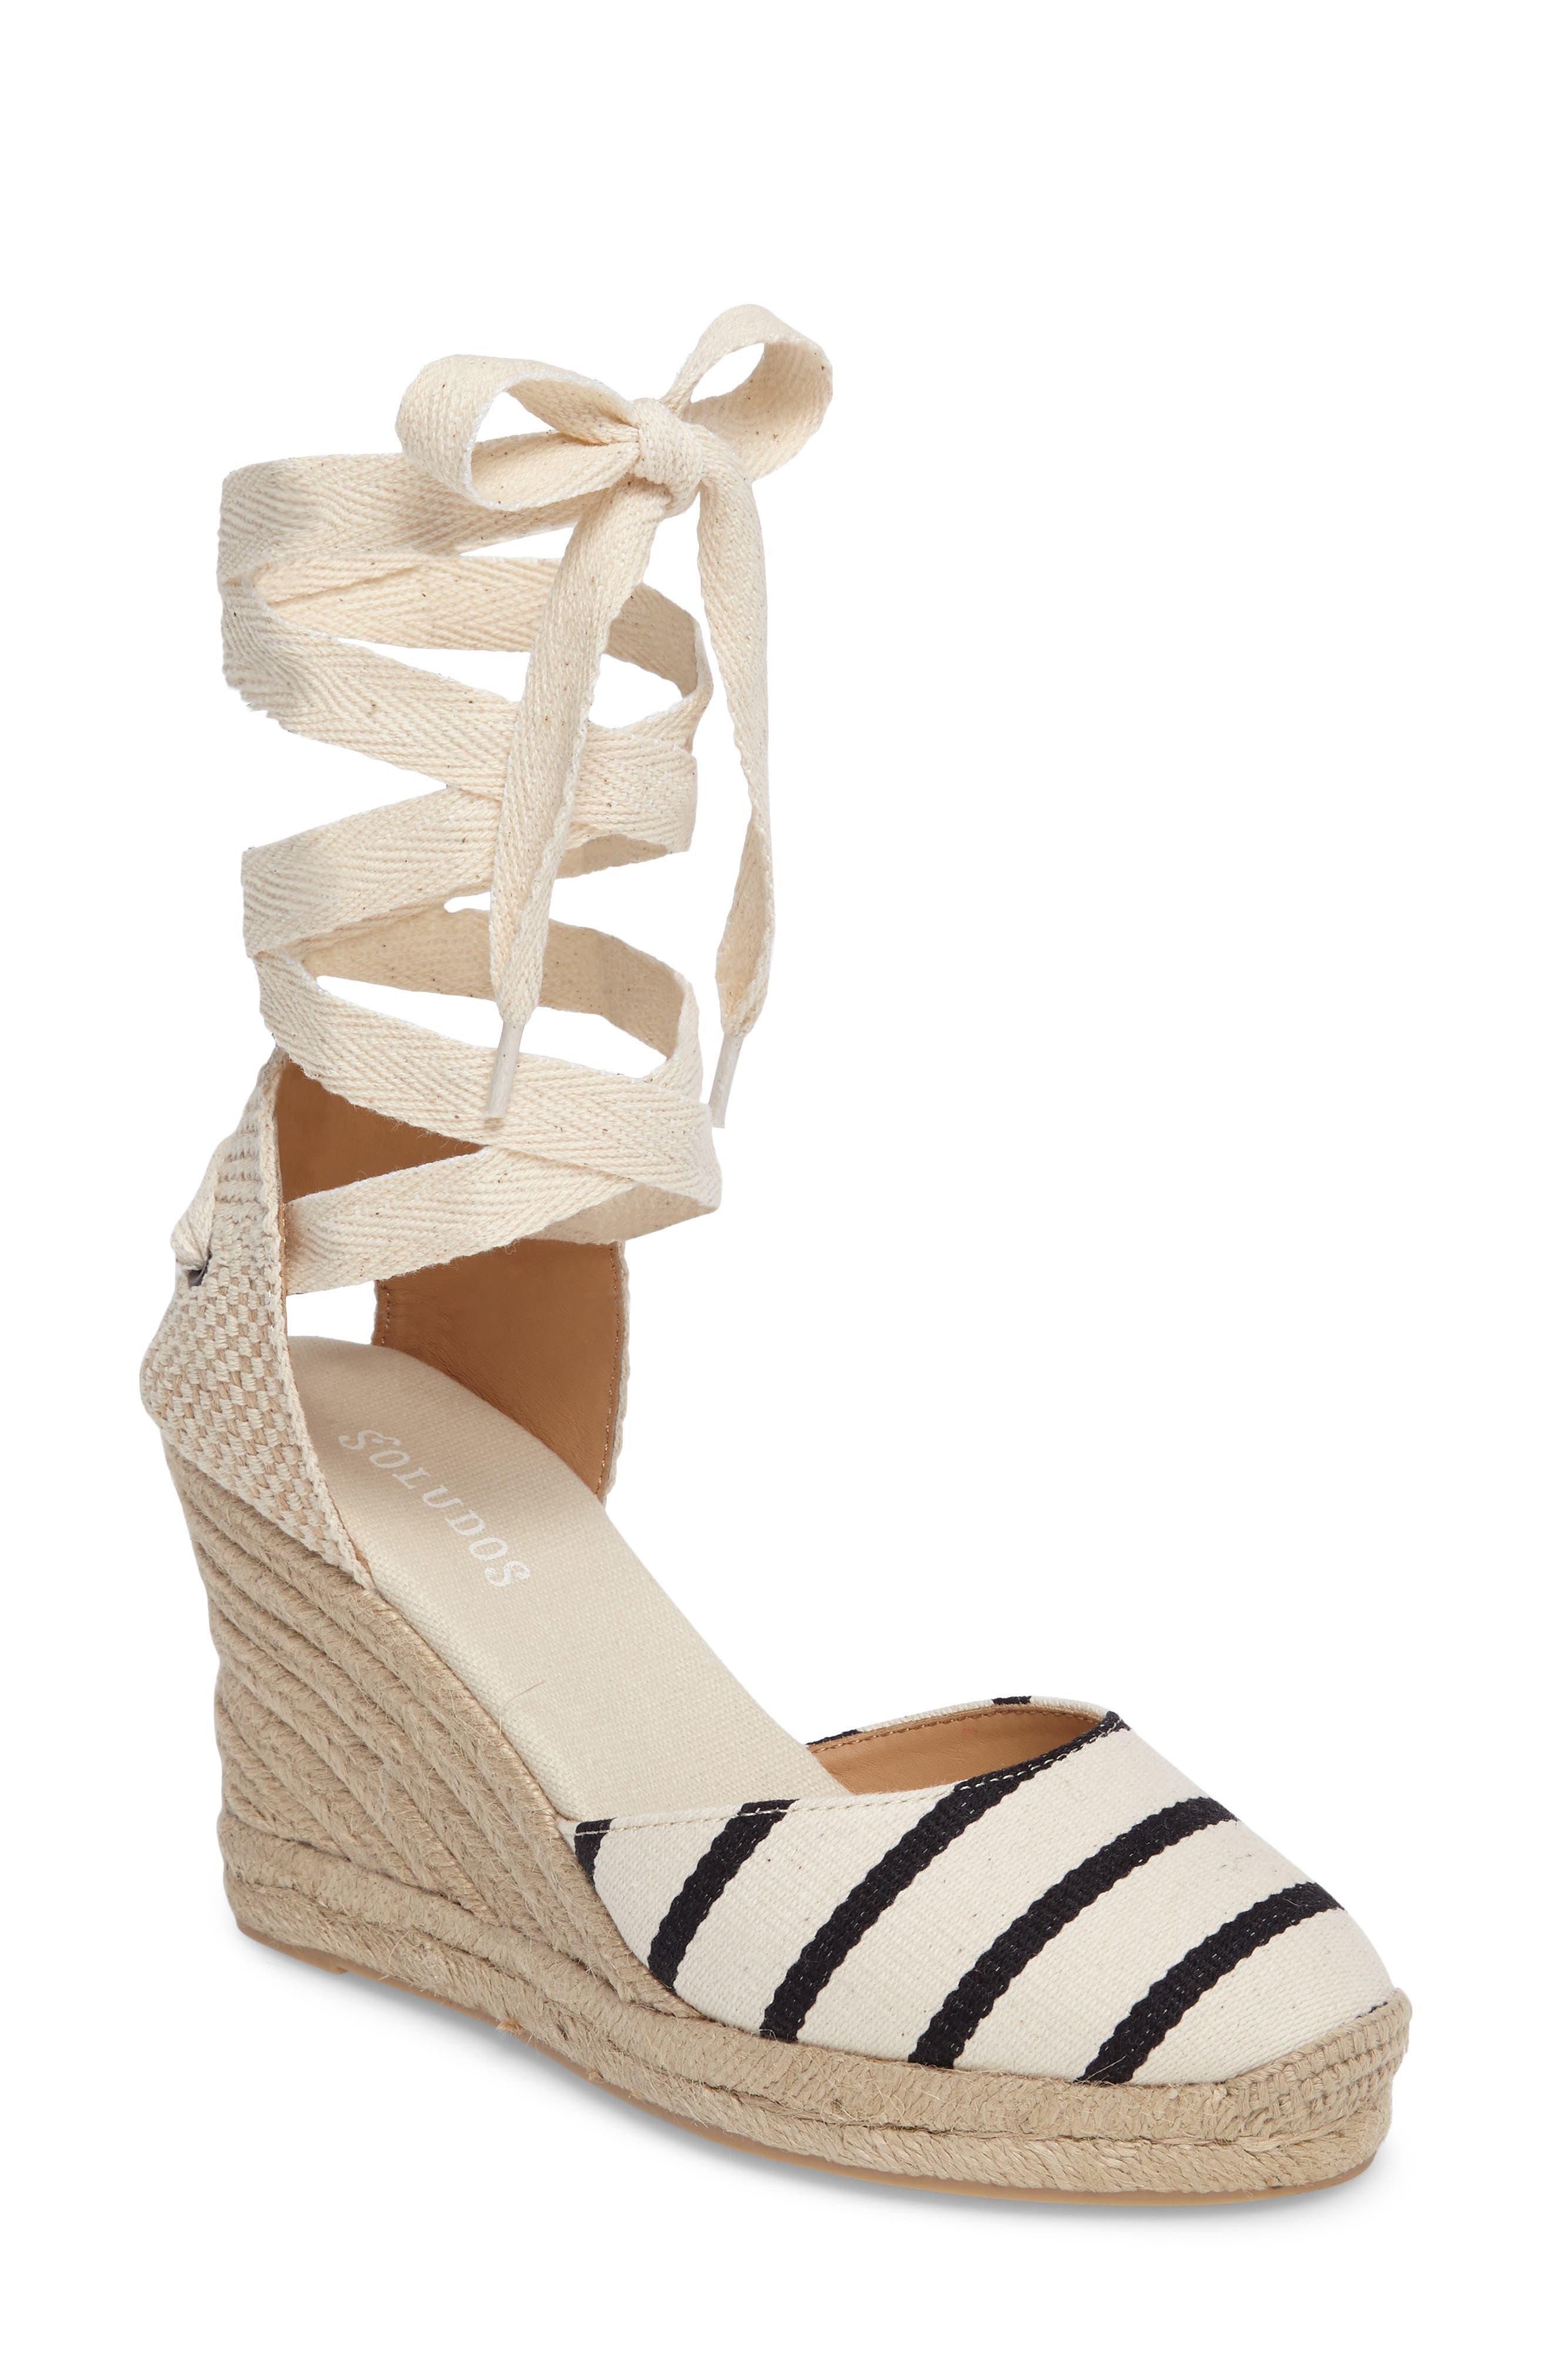 Wedge Sandal,                         Main,                         color,